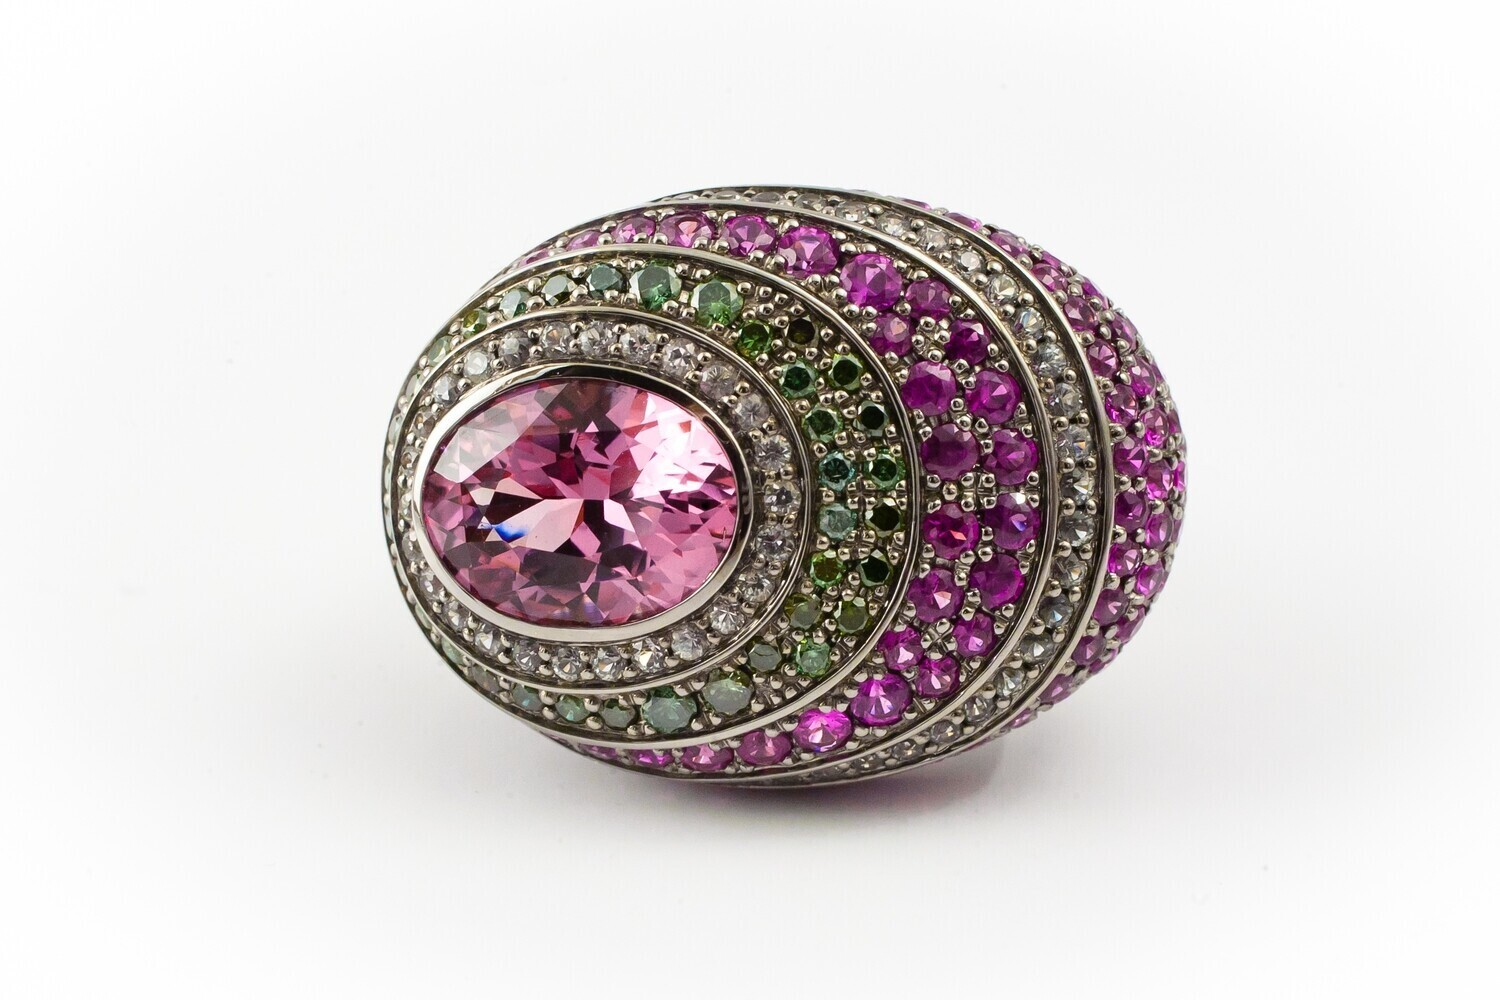 18K Gold Ring with Spinel, Rubies, Green Diamonds and Sapphires, Color Gems Collection, U353R